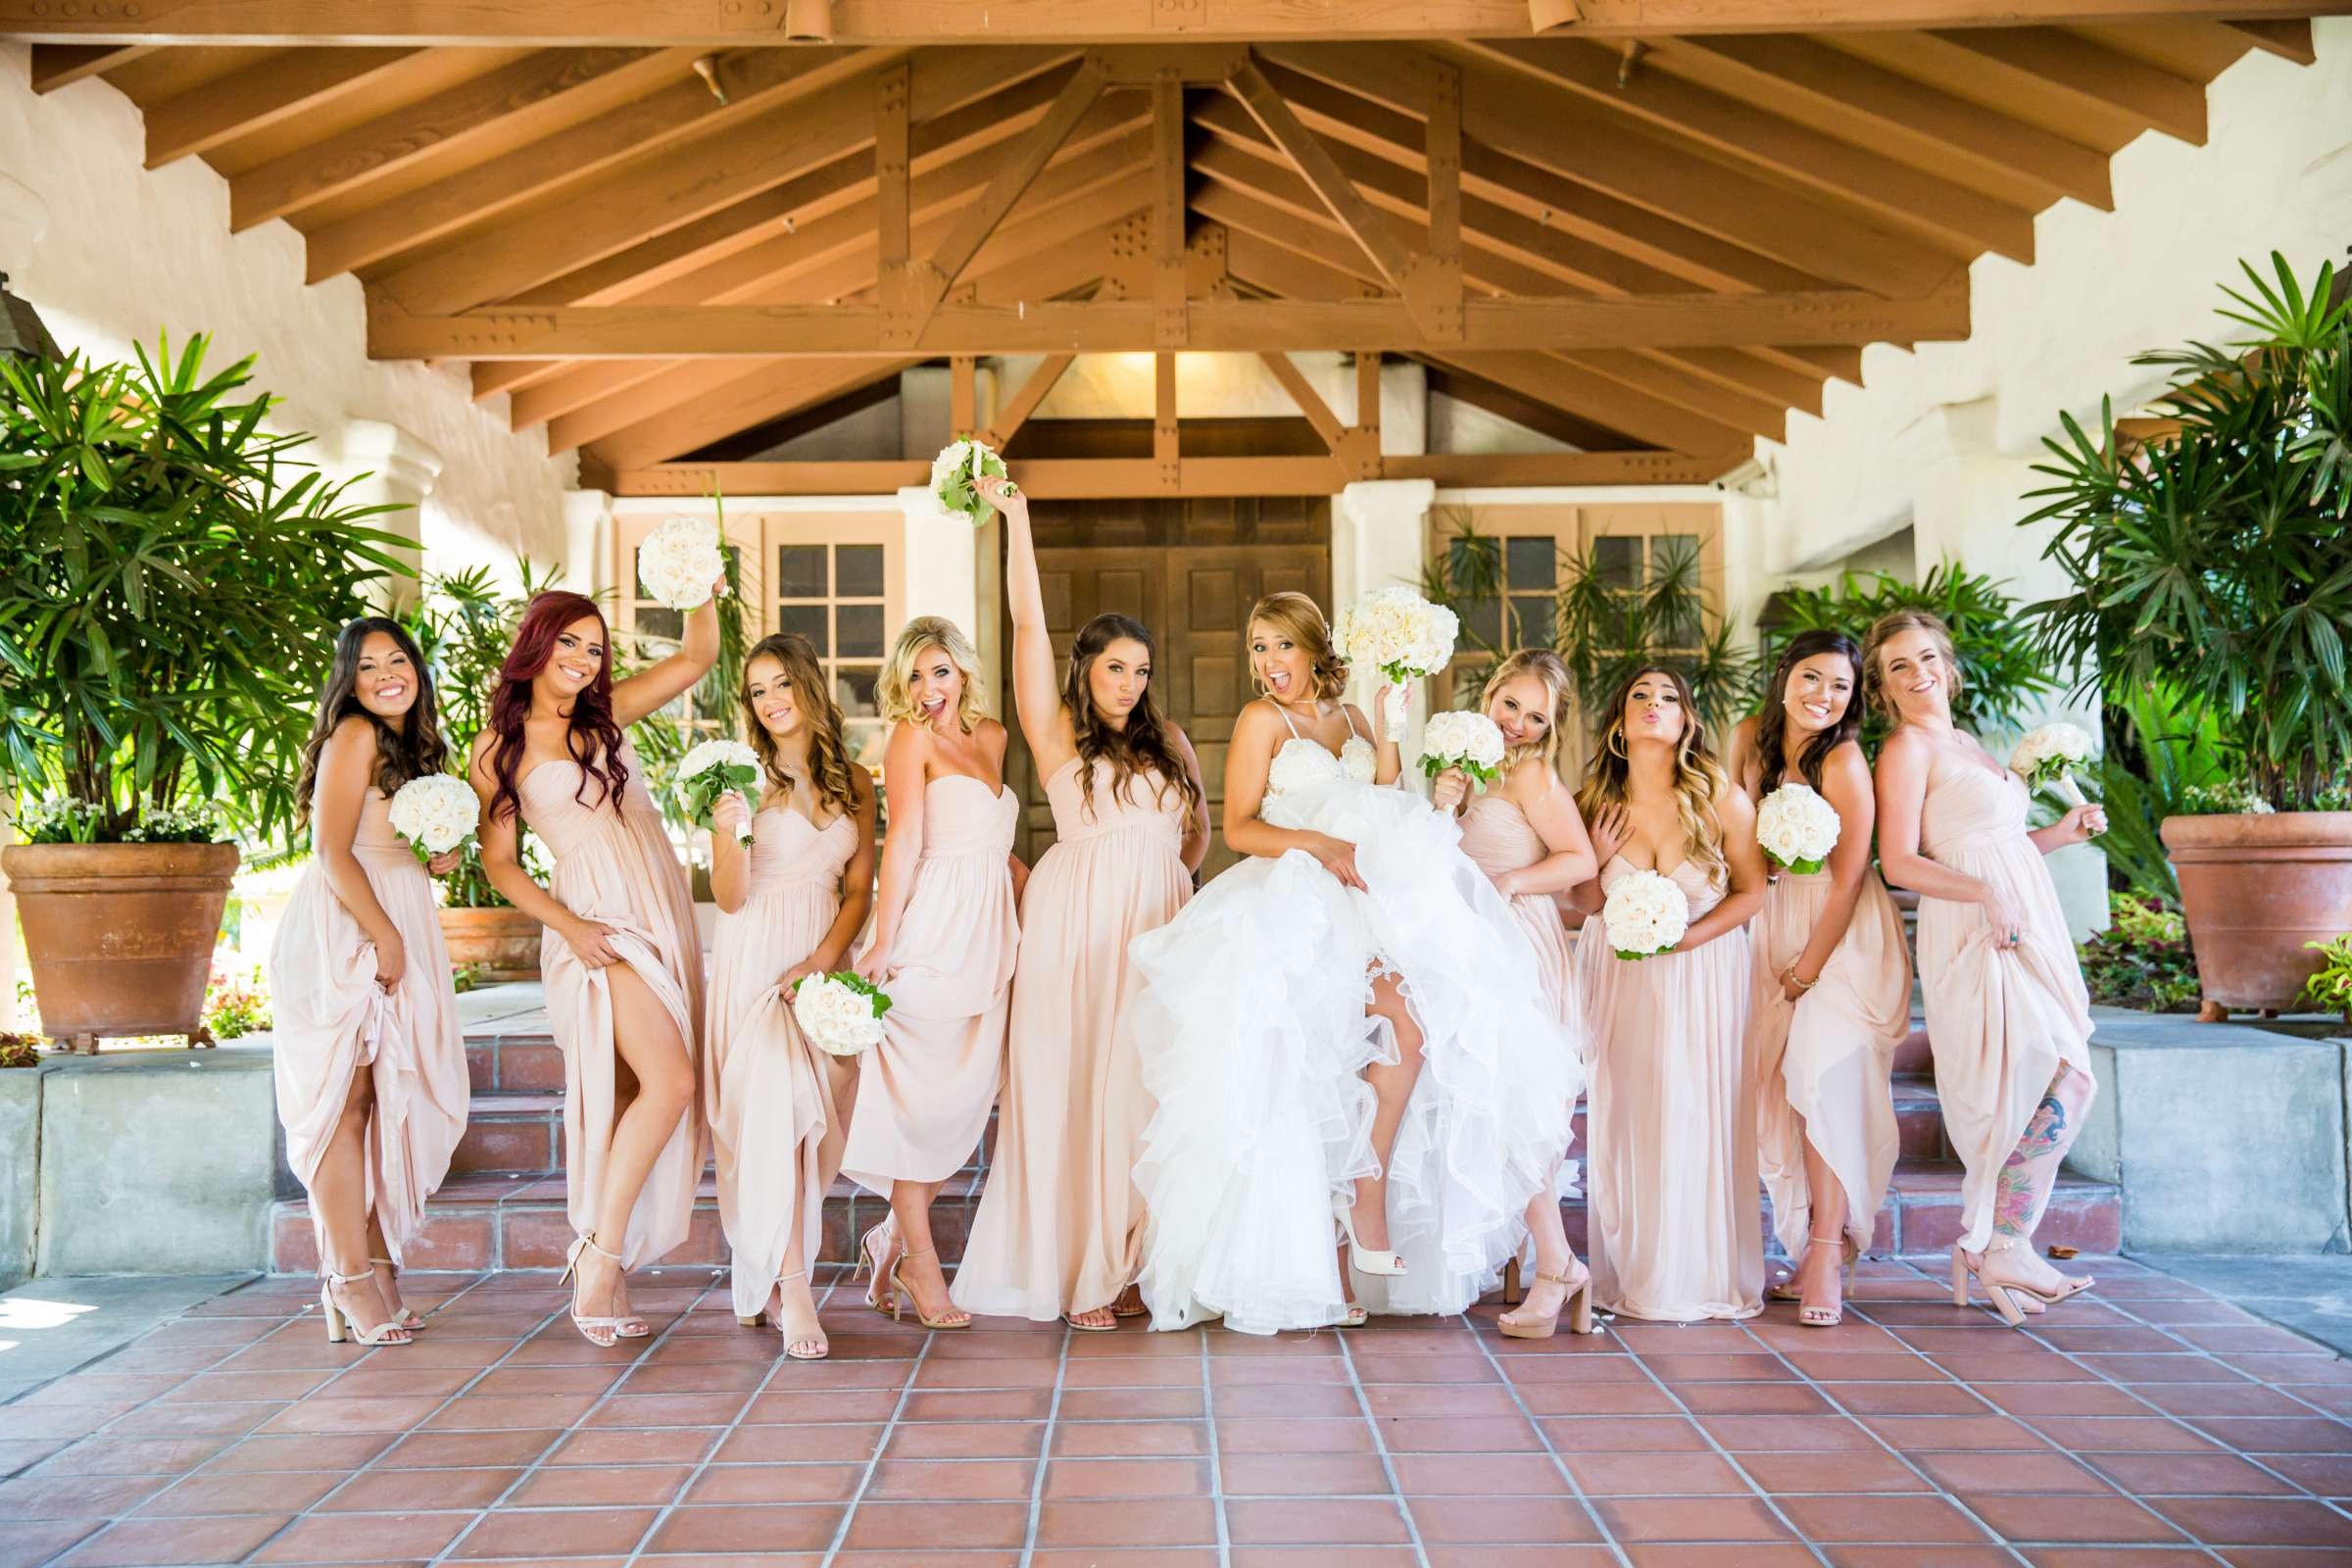 Fairbanks Ranch Country Club Wedding coordinated by Monarch Weddings, Gabriella and Kyle Wedding Photo #7 by True Photography